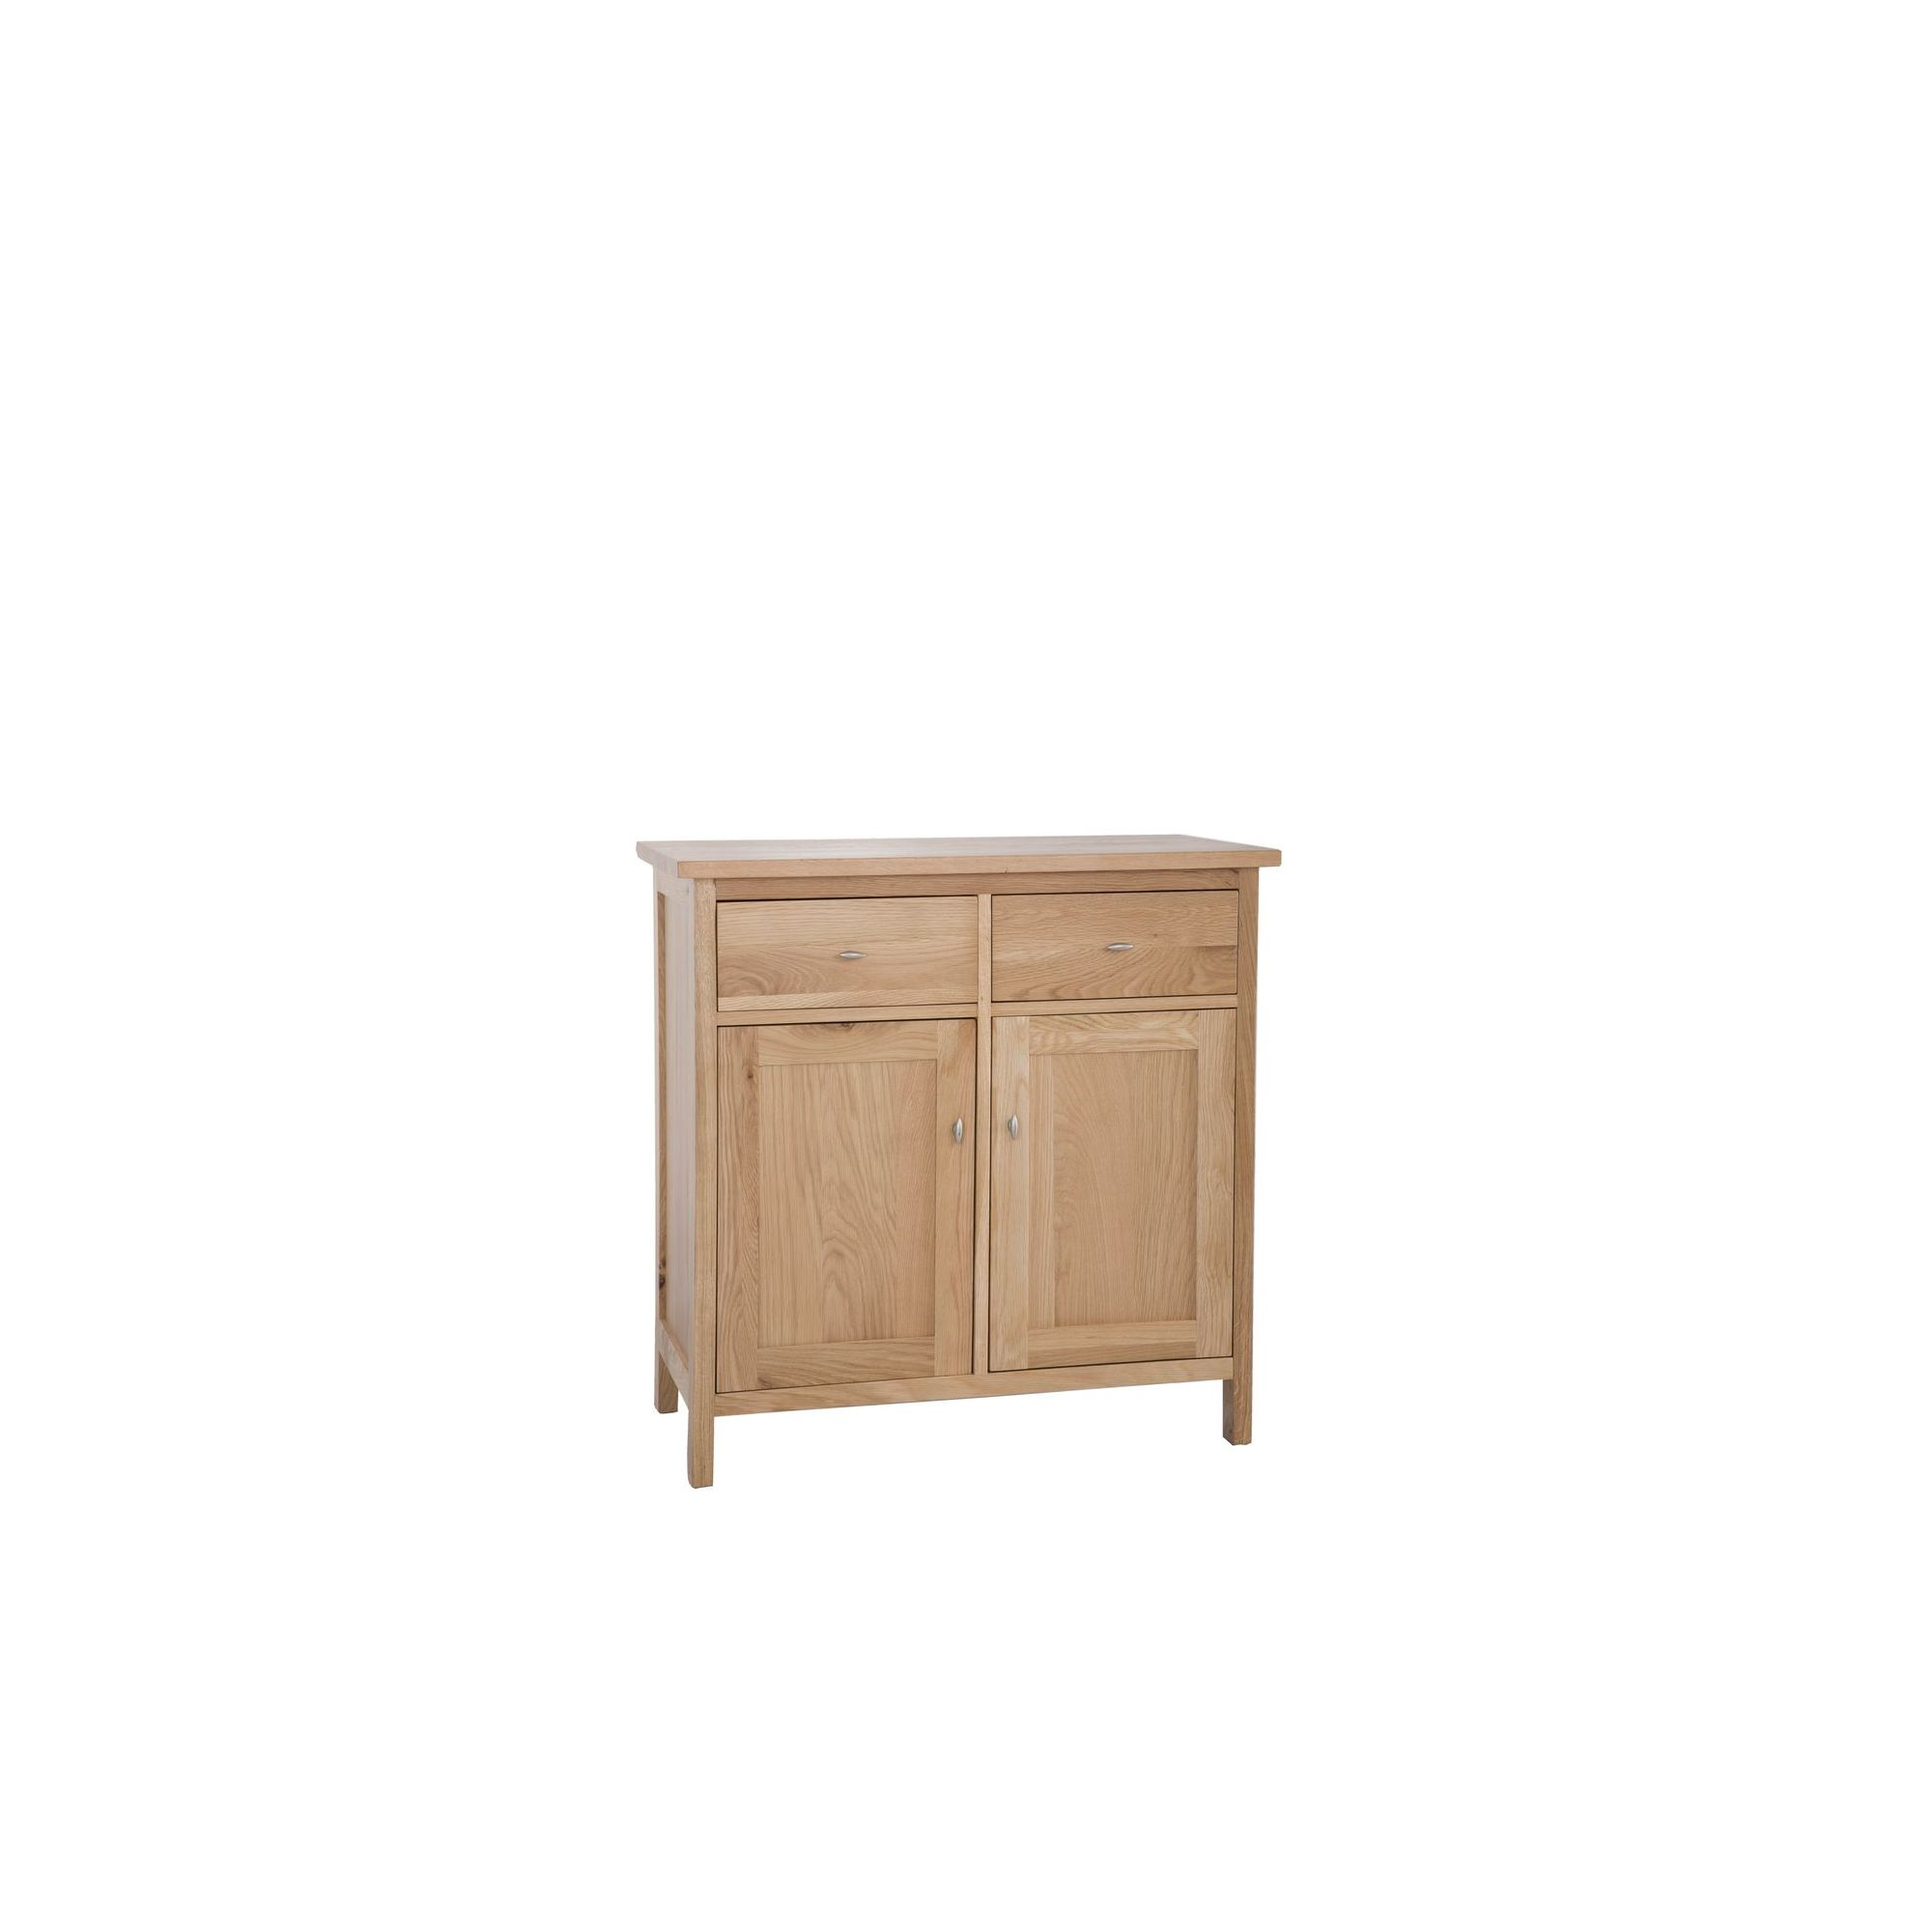 Oakinsen Balmain Small Sideboard at Tesco Direct